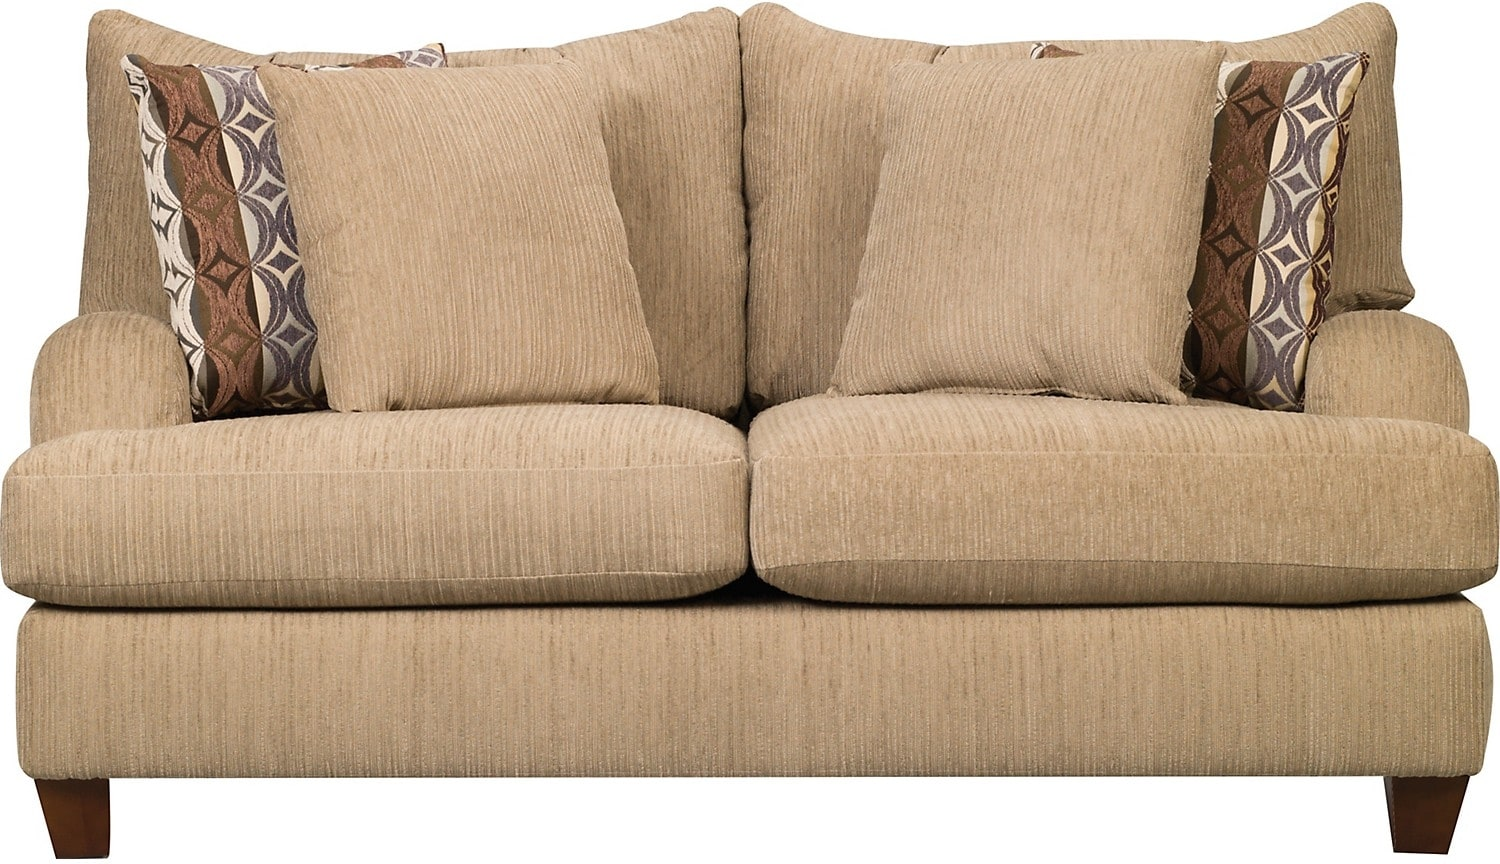 Putty chenille sofa beige united furniture warehouse for Beige chenille sectional sofa